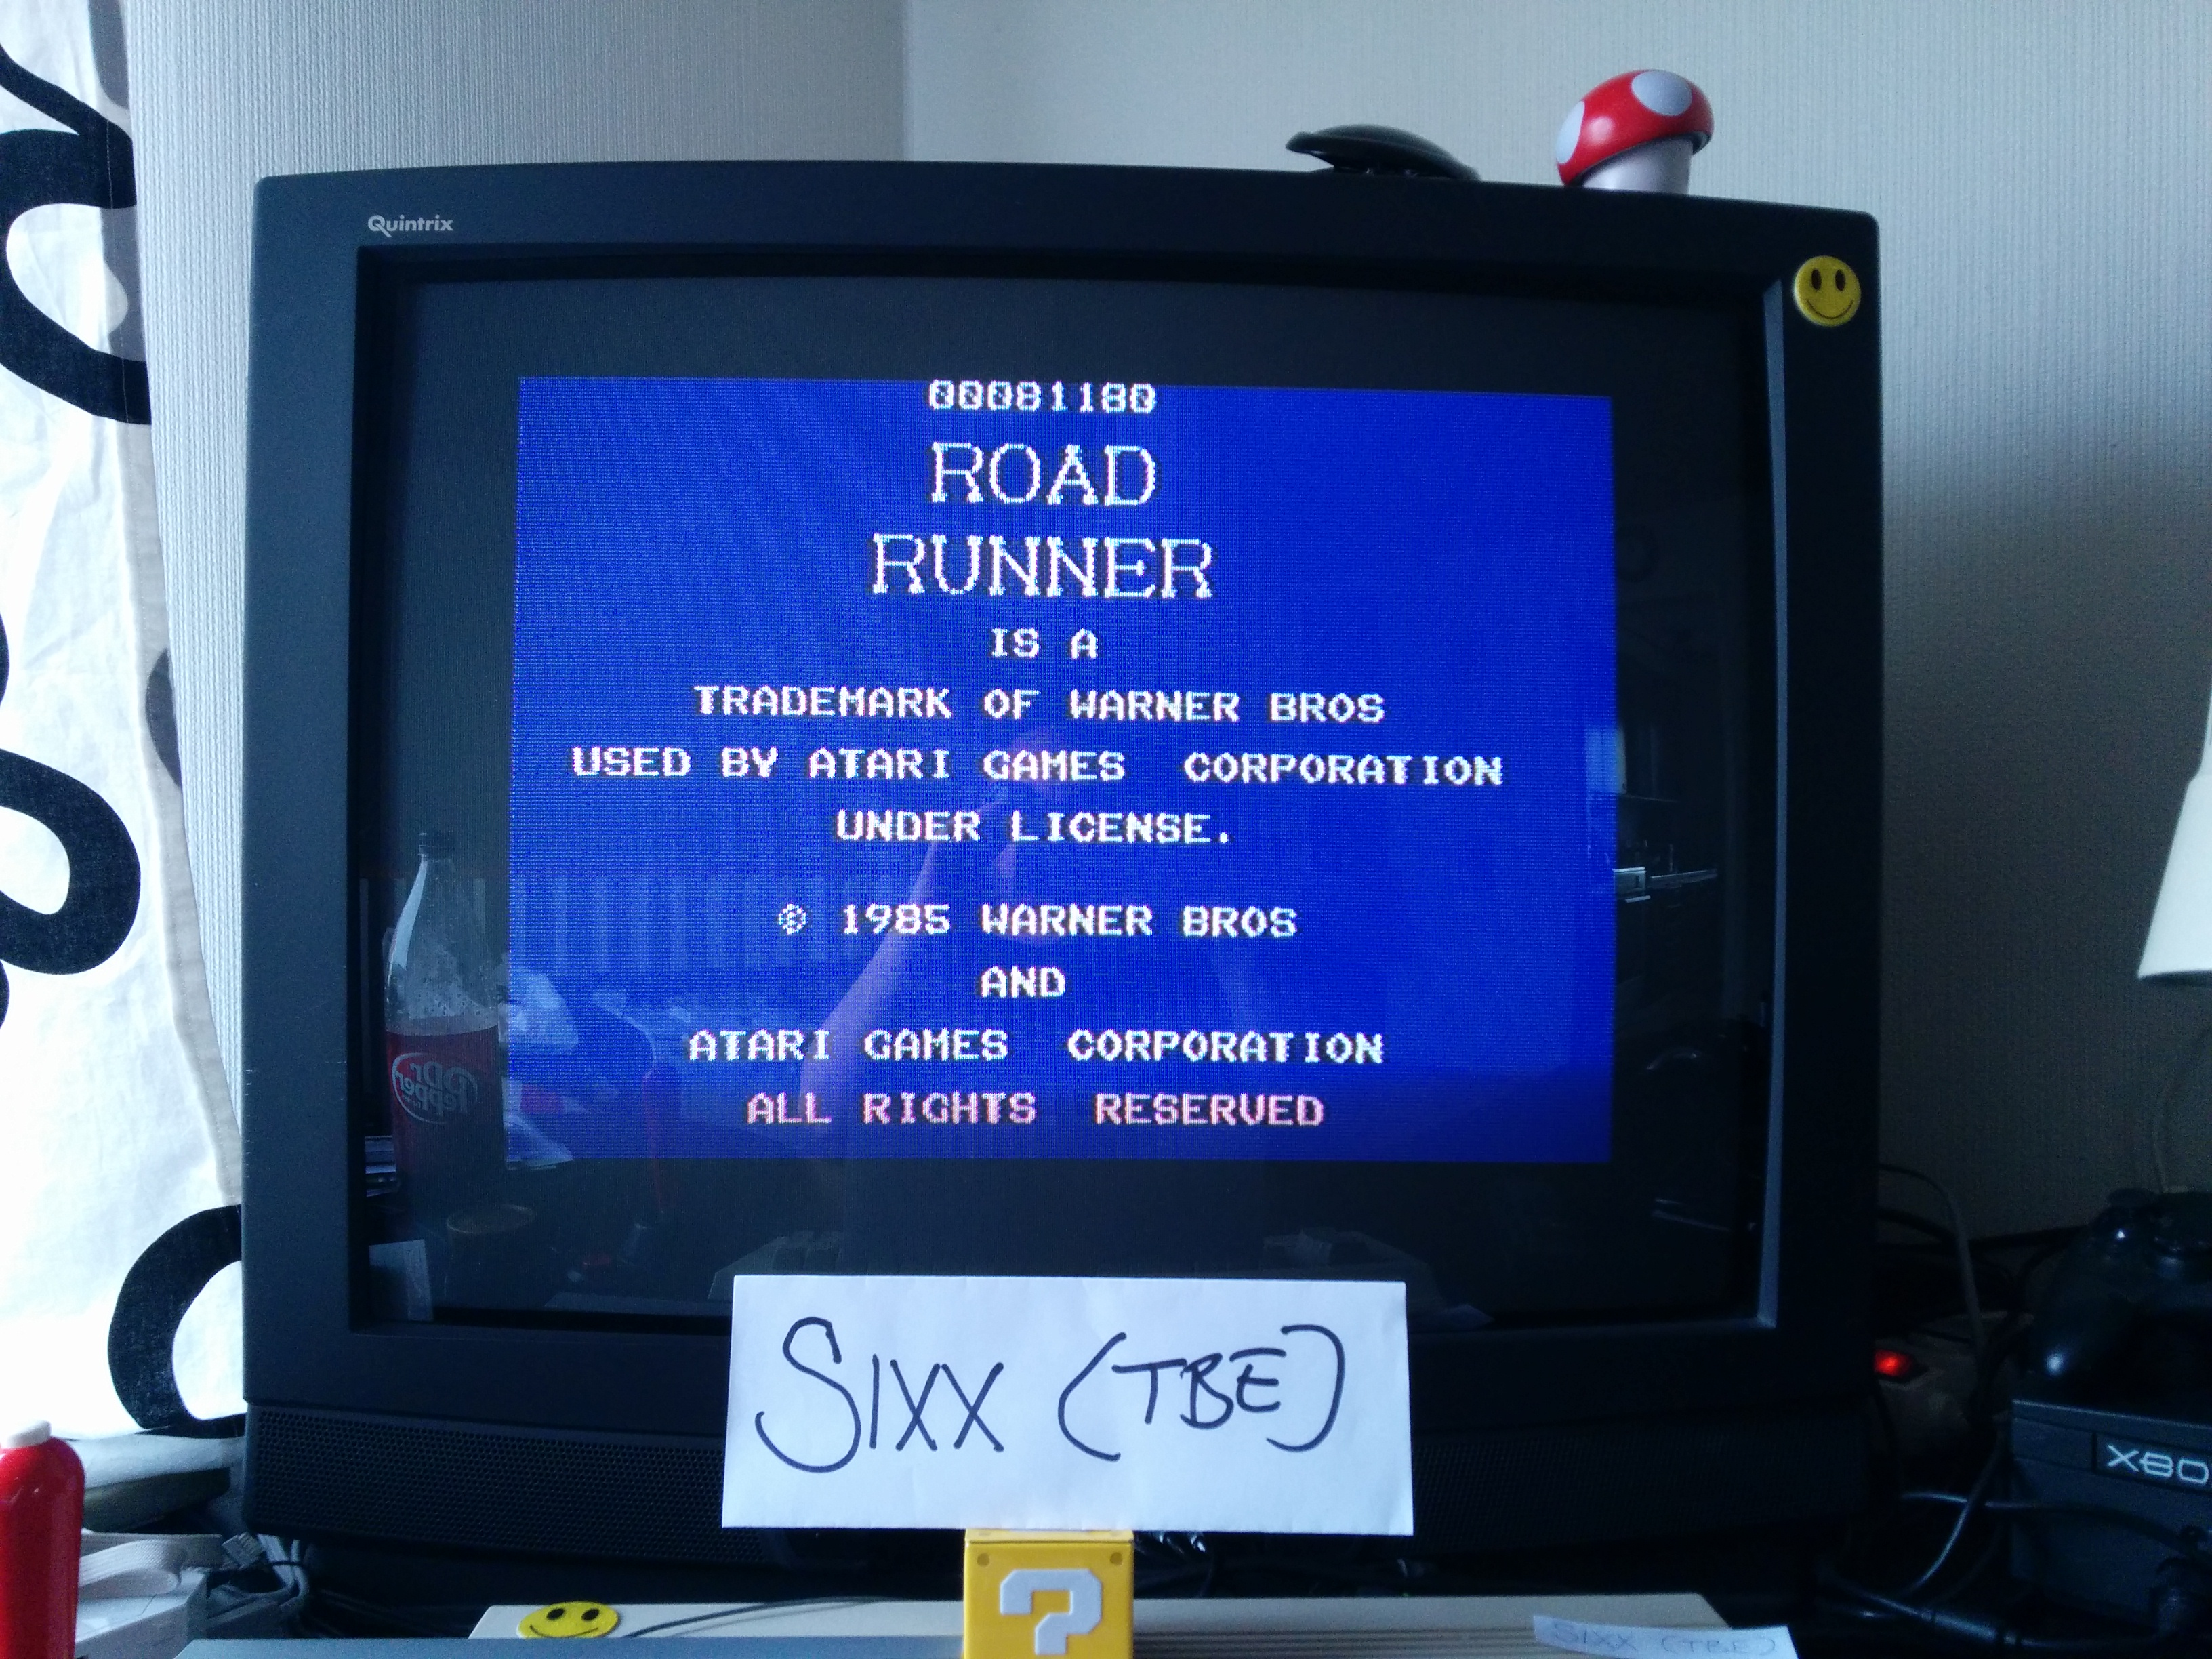 Sixx: Road Runner (Commodore 64) 81,180 points on 2014-04-05 05:11:15